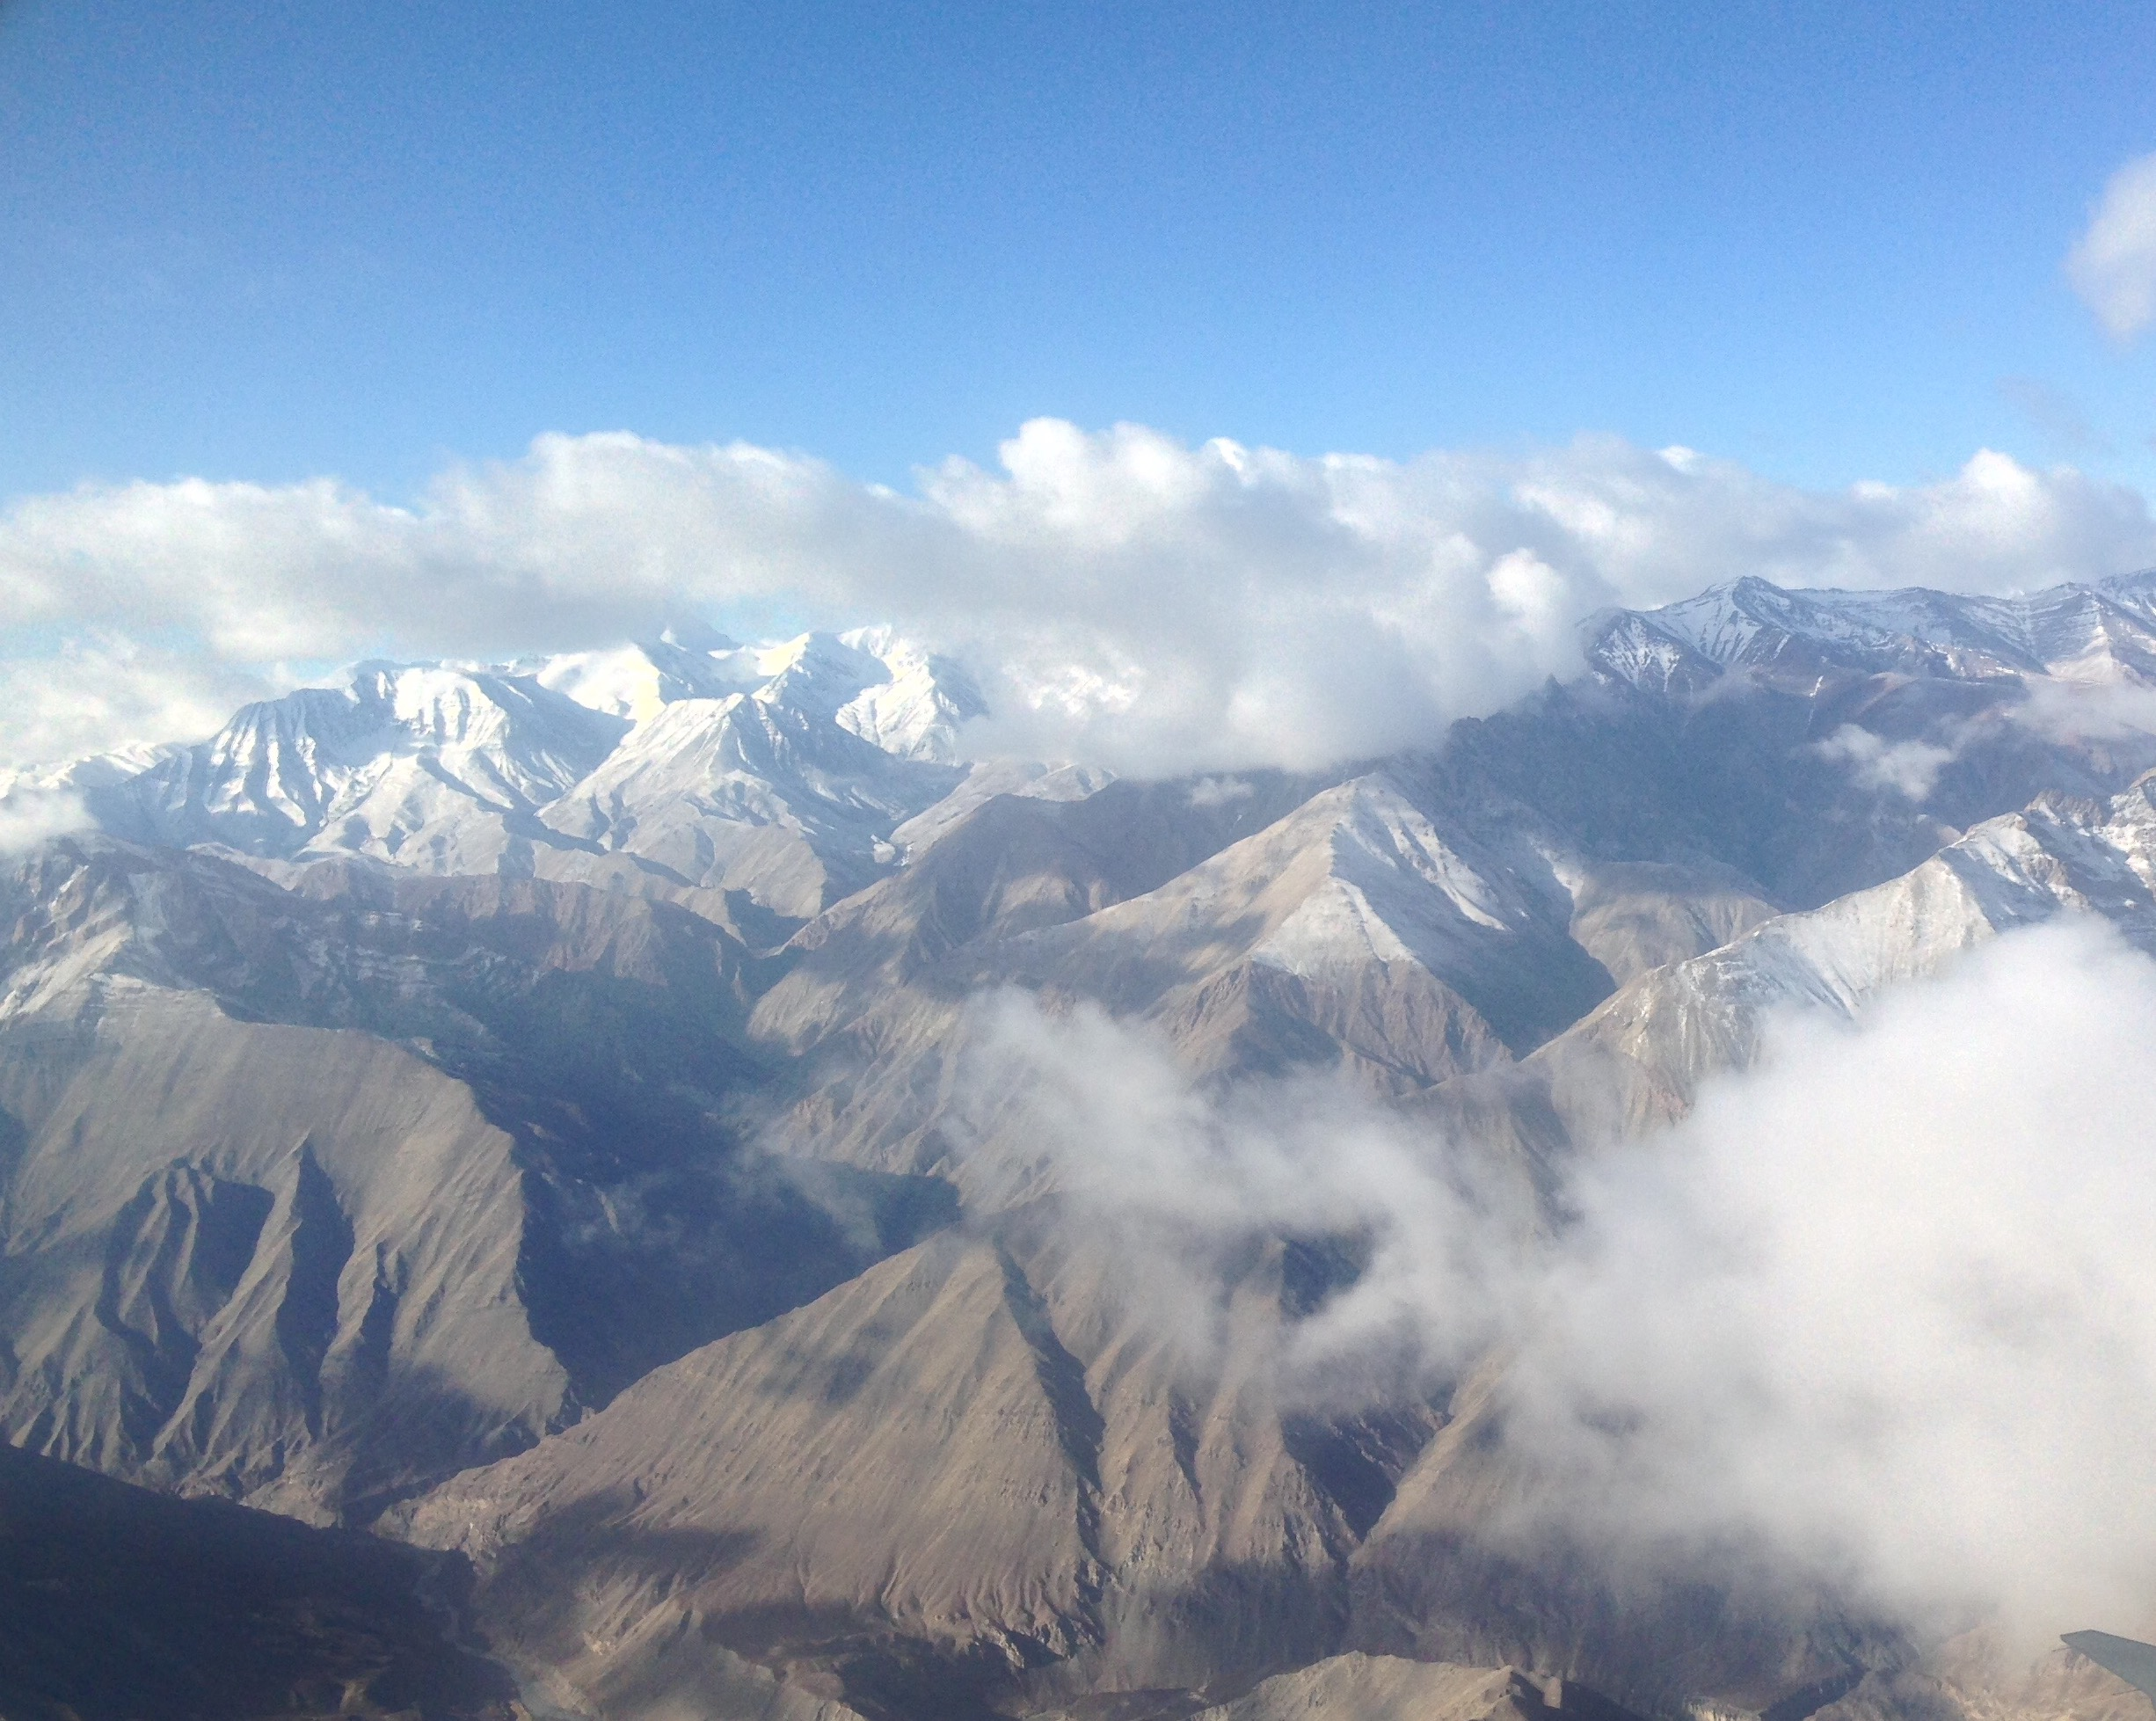 Image as we flew above the mighty peaks